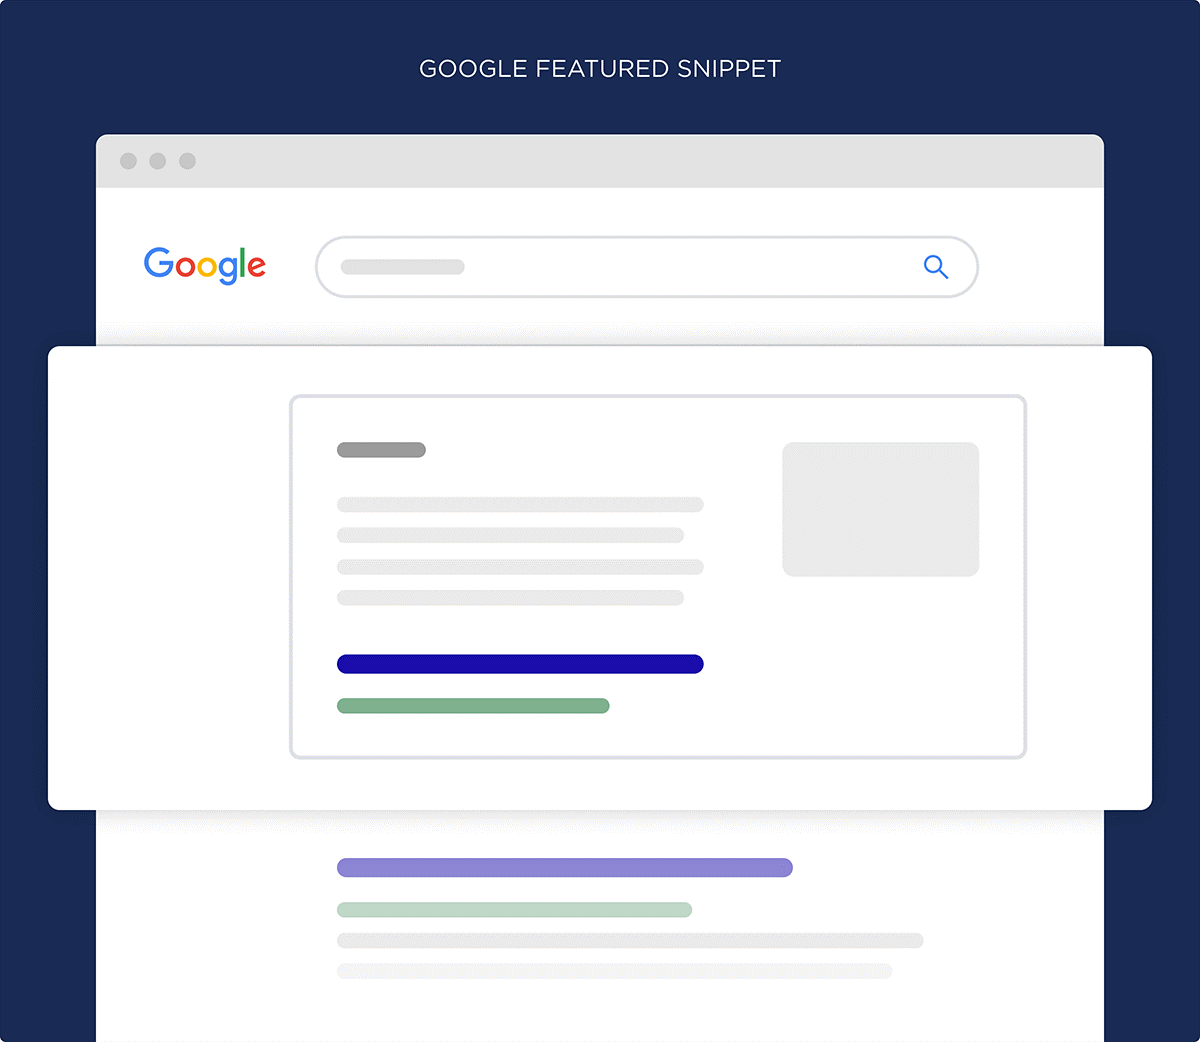 example google snippet